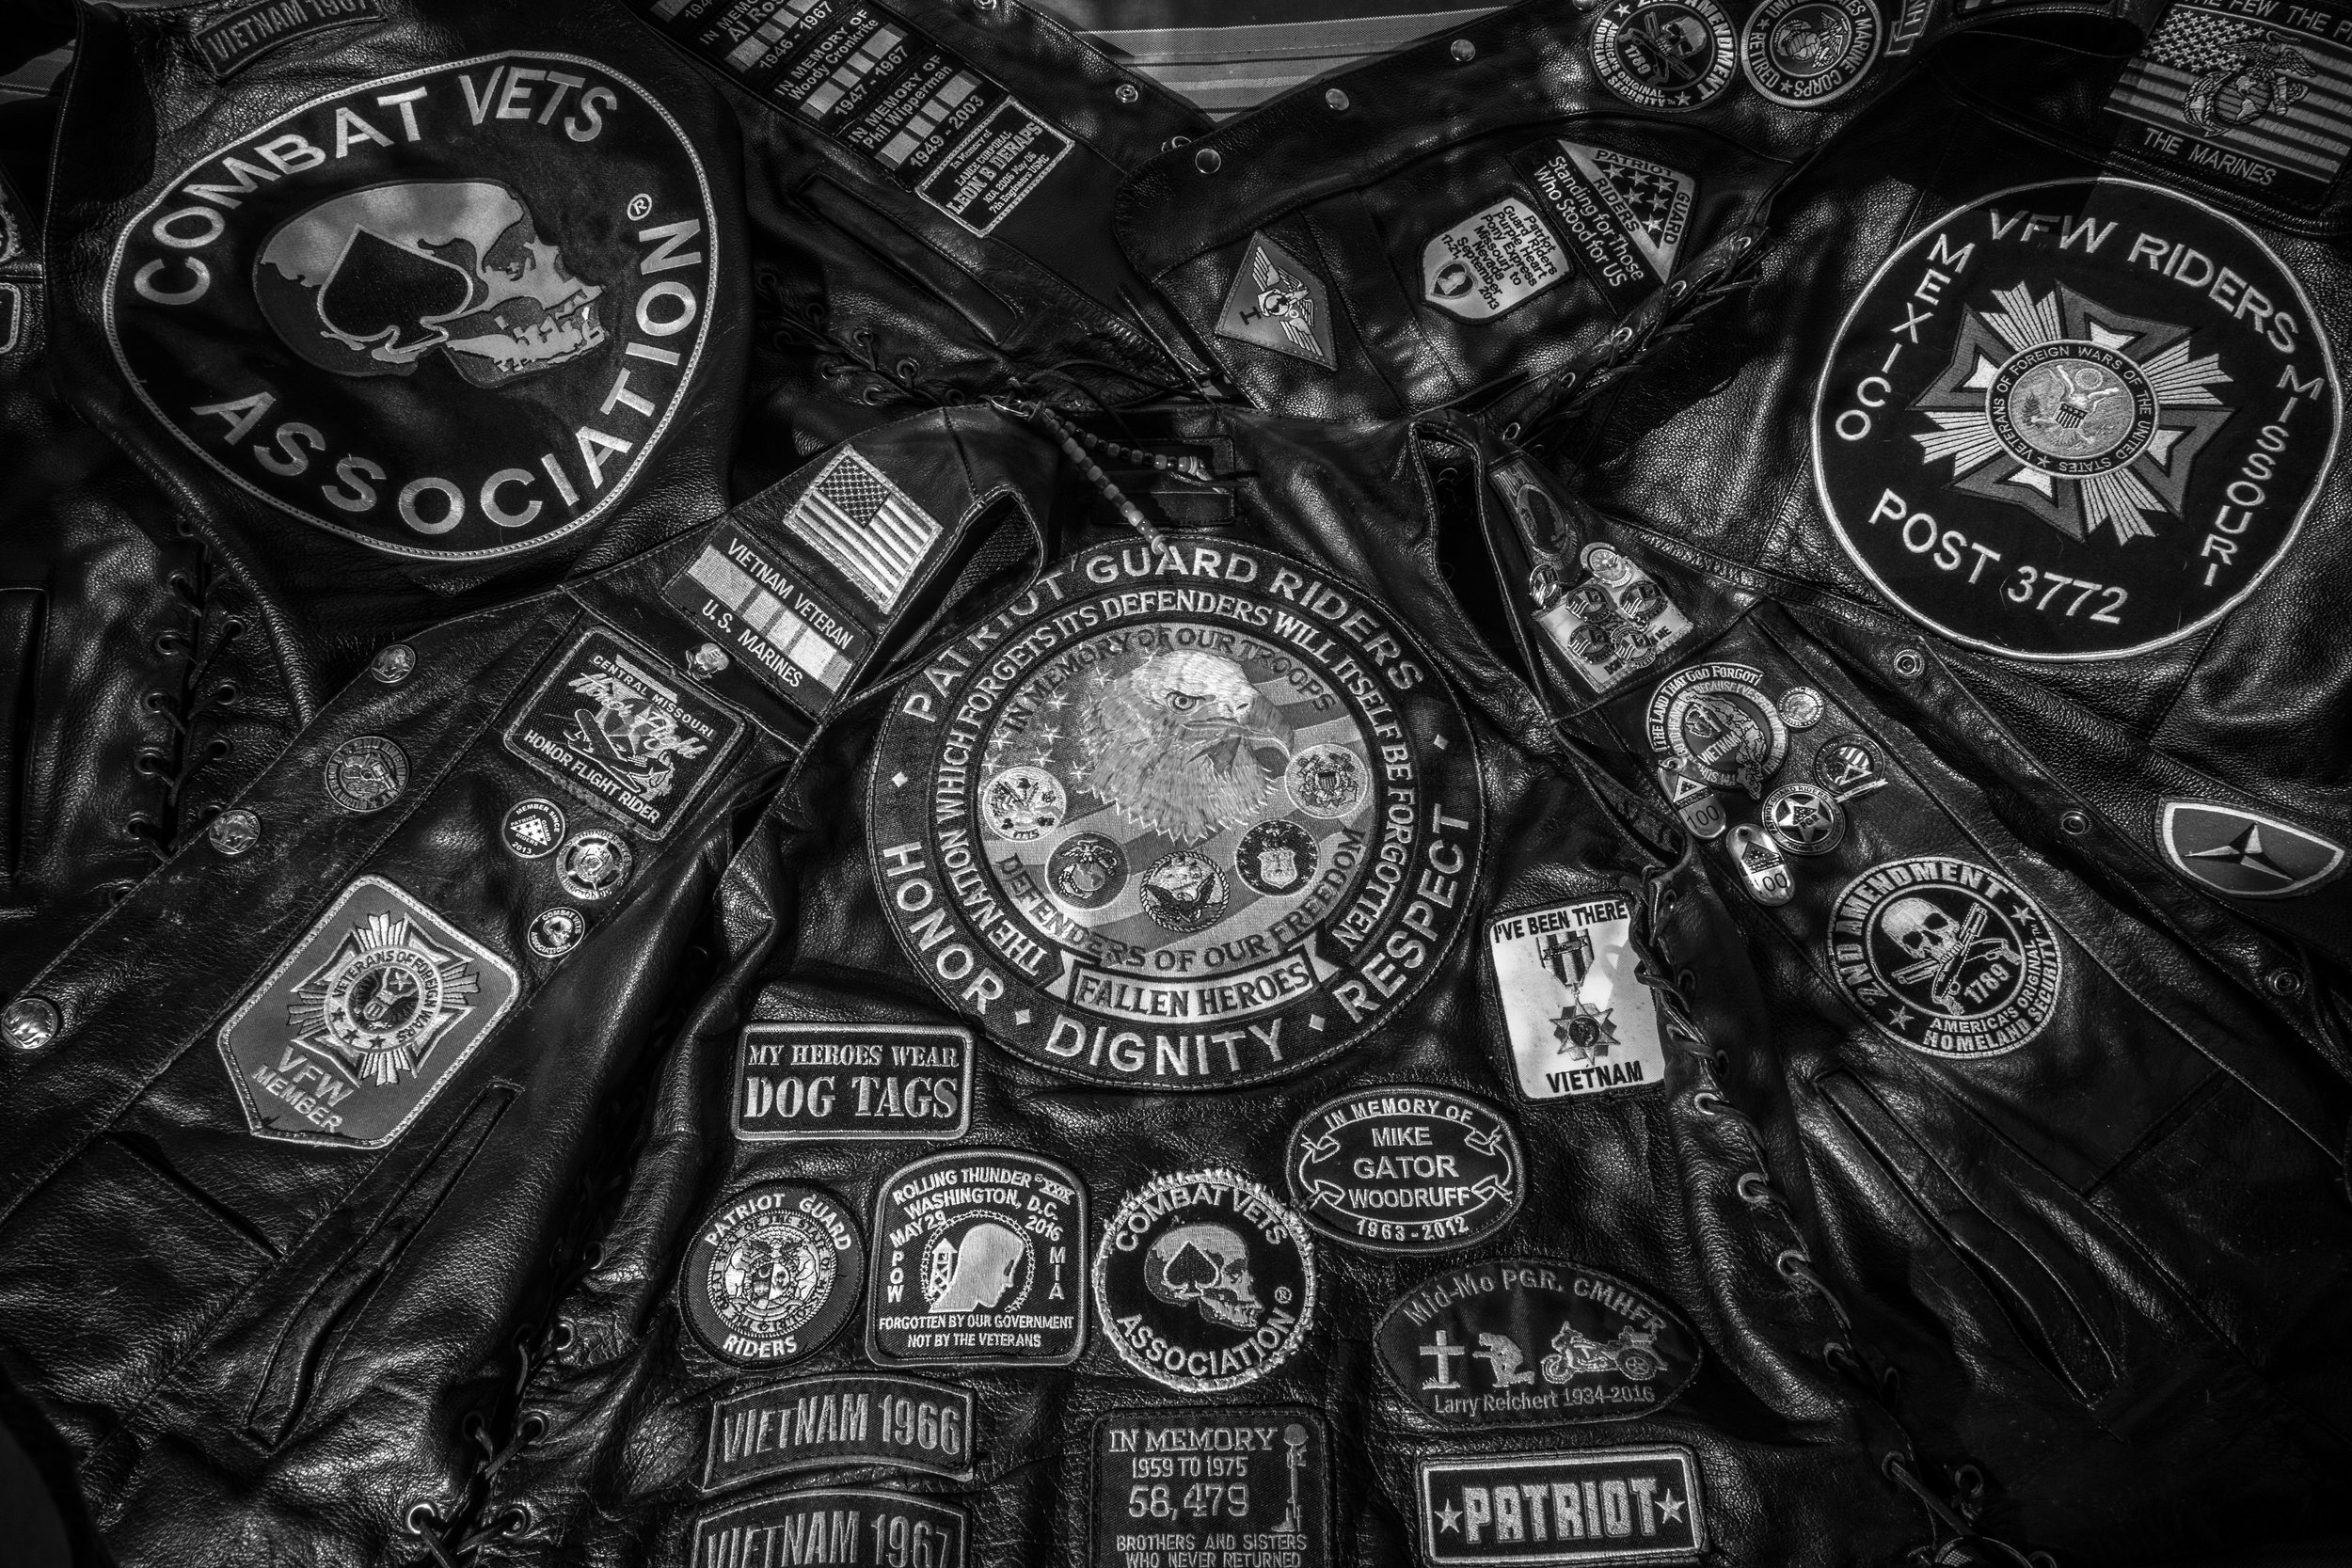 Bill Weldon's motorcycle vests as seen on Thursday, Jun. 20, 2019. Weldon belongs to several veteran focused motorcycle organizations and serves as a Senior Ride Captain for the Patriot Guard Riders. The Patriot Guard is known for motorcycle escorts for and flag displays at veteran funerals.